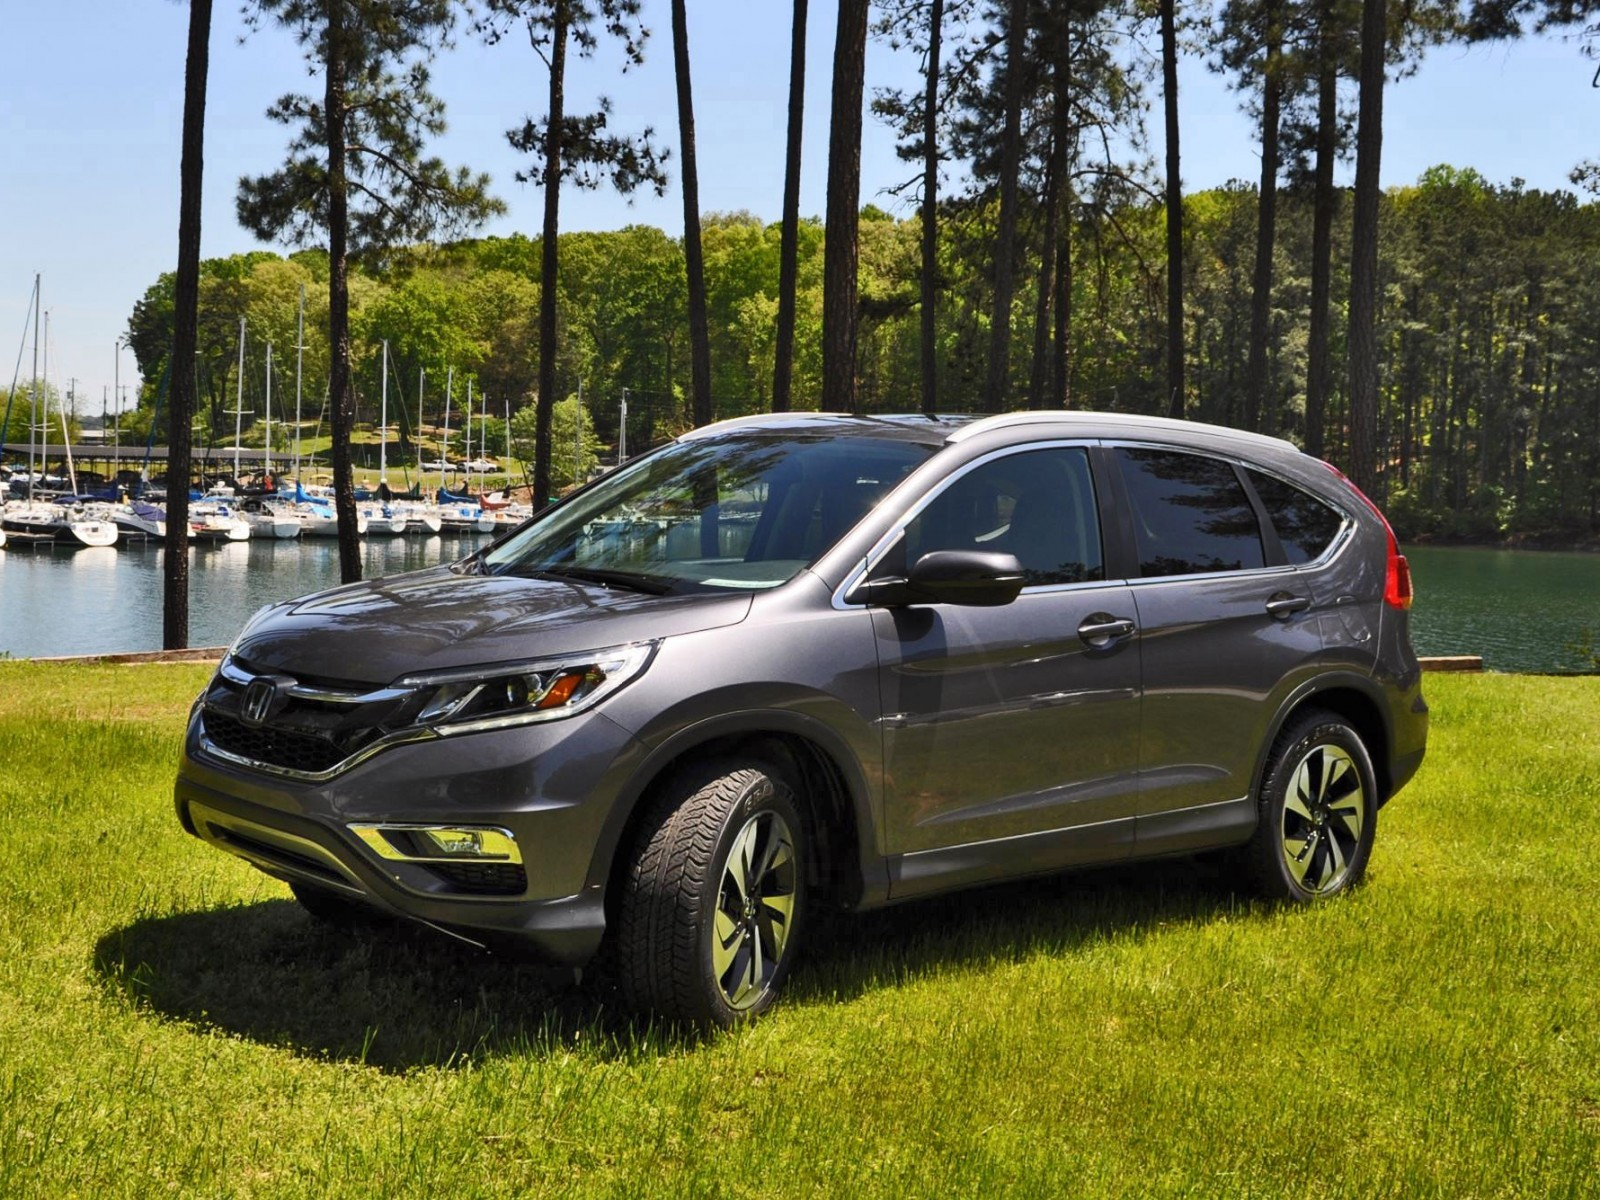 2015 honda cr v touring awd review 13. Black Bedroom Furniture Sets. Home Design Ideas